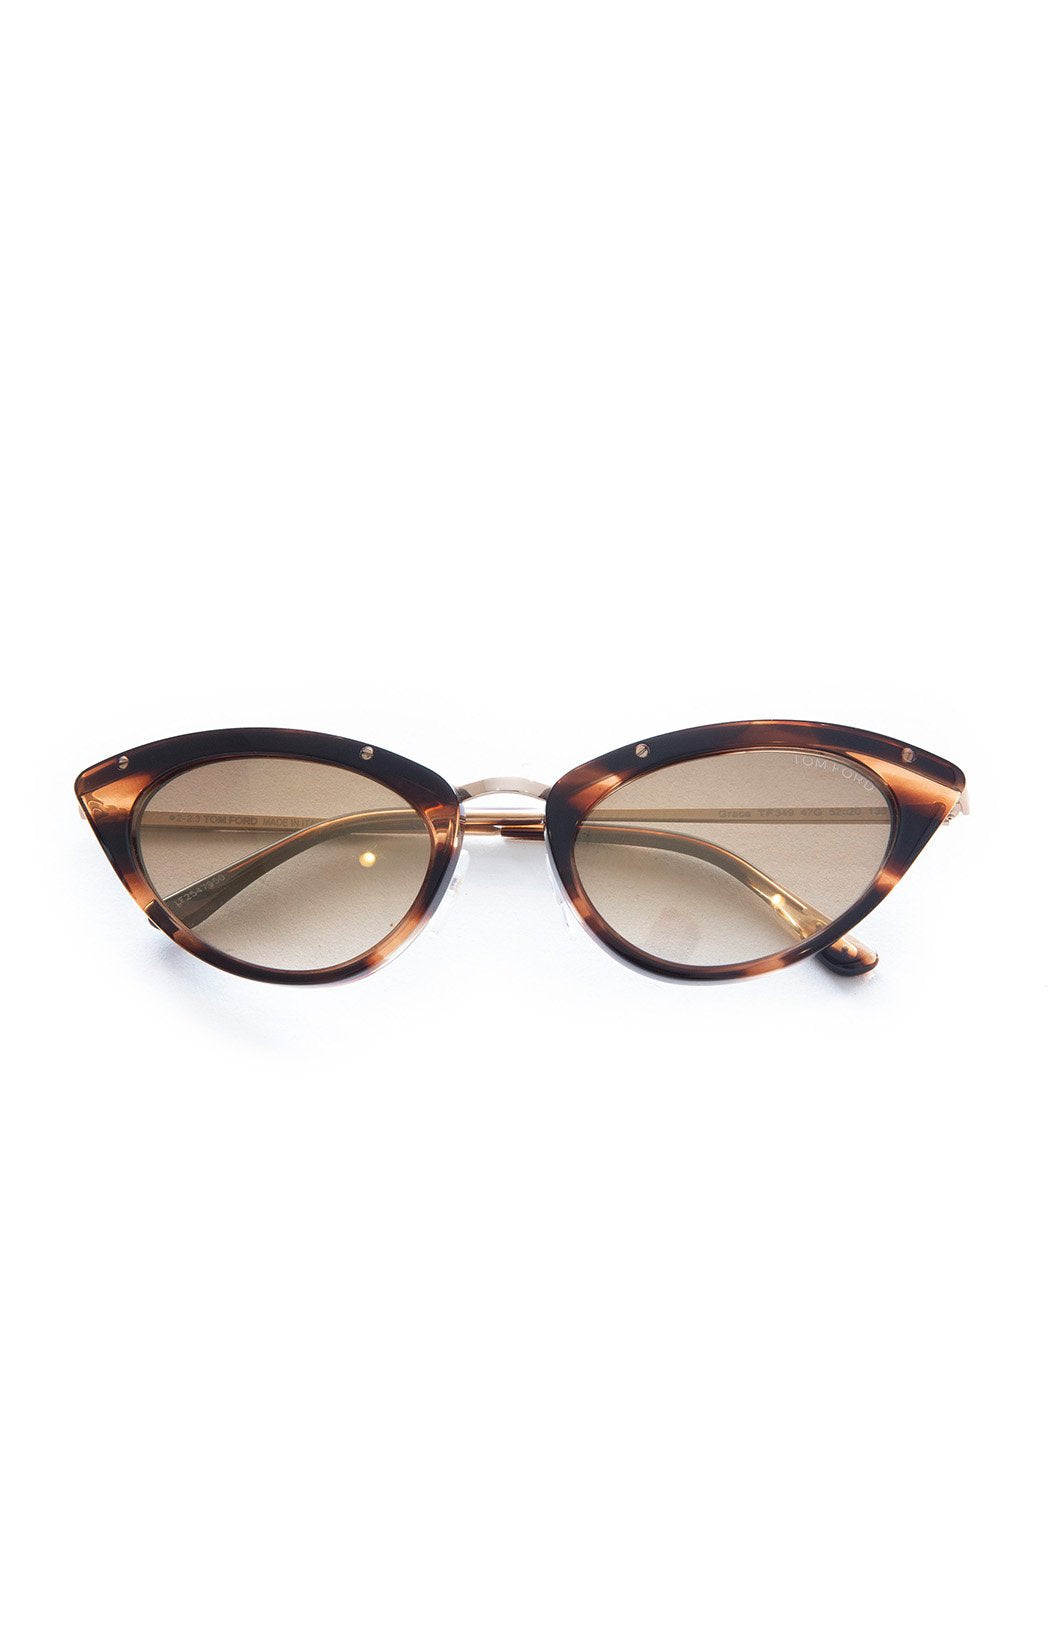 "Front view TOM FORD with case Sunglasses Size: 1.5"" H x 6"" W"